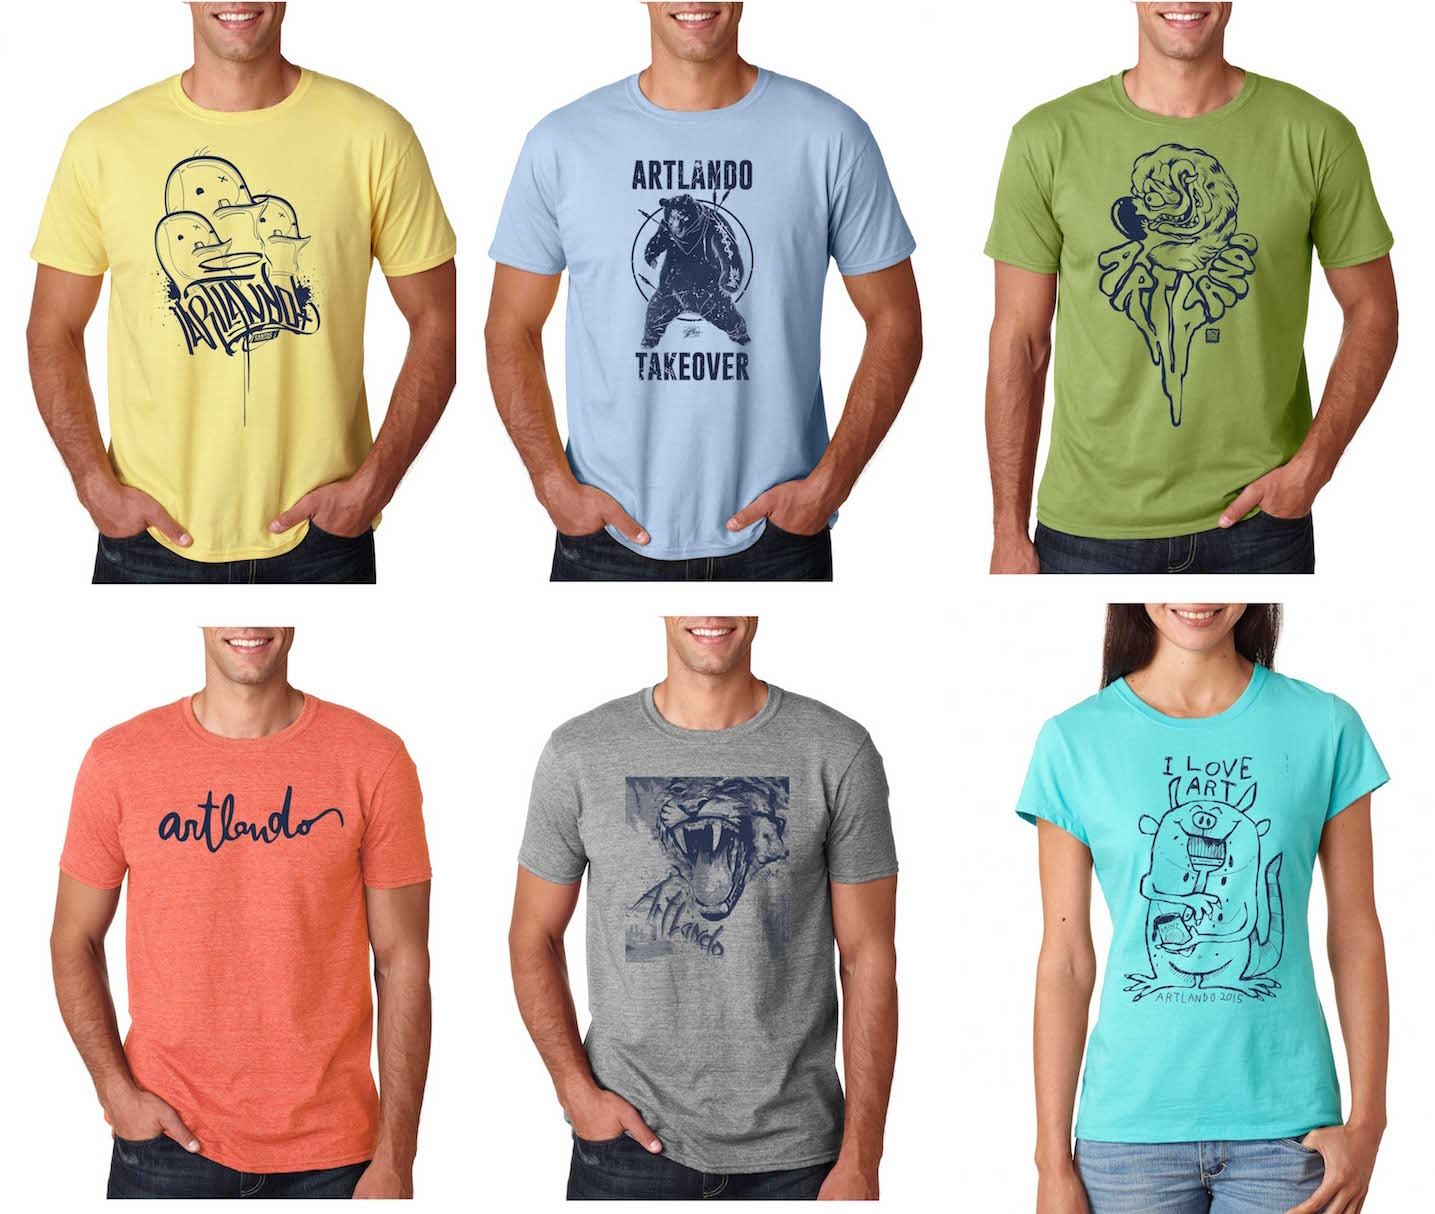 Why Have Just One Artlando T Shirt When You Could Have 36 Different